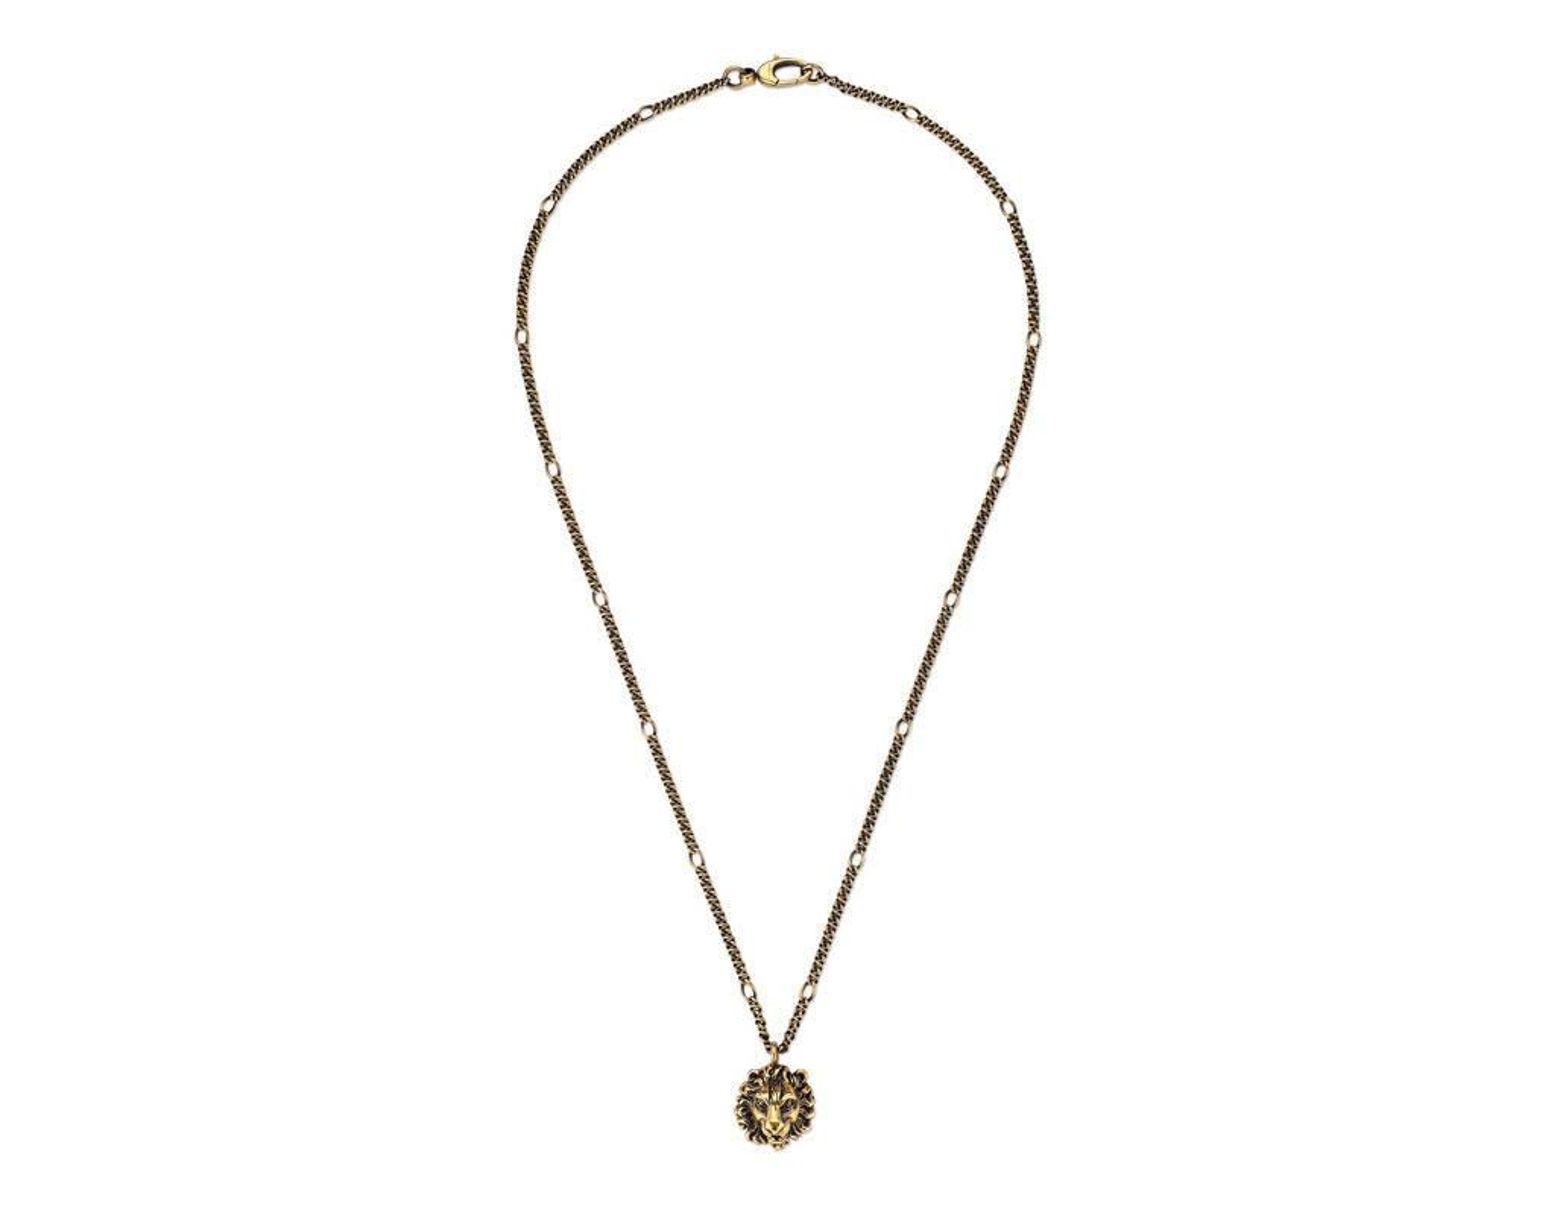 3ce6f6962 Gucci Necklace With Lion Head Pendant in Metallic - Save 5% - Lyst